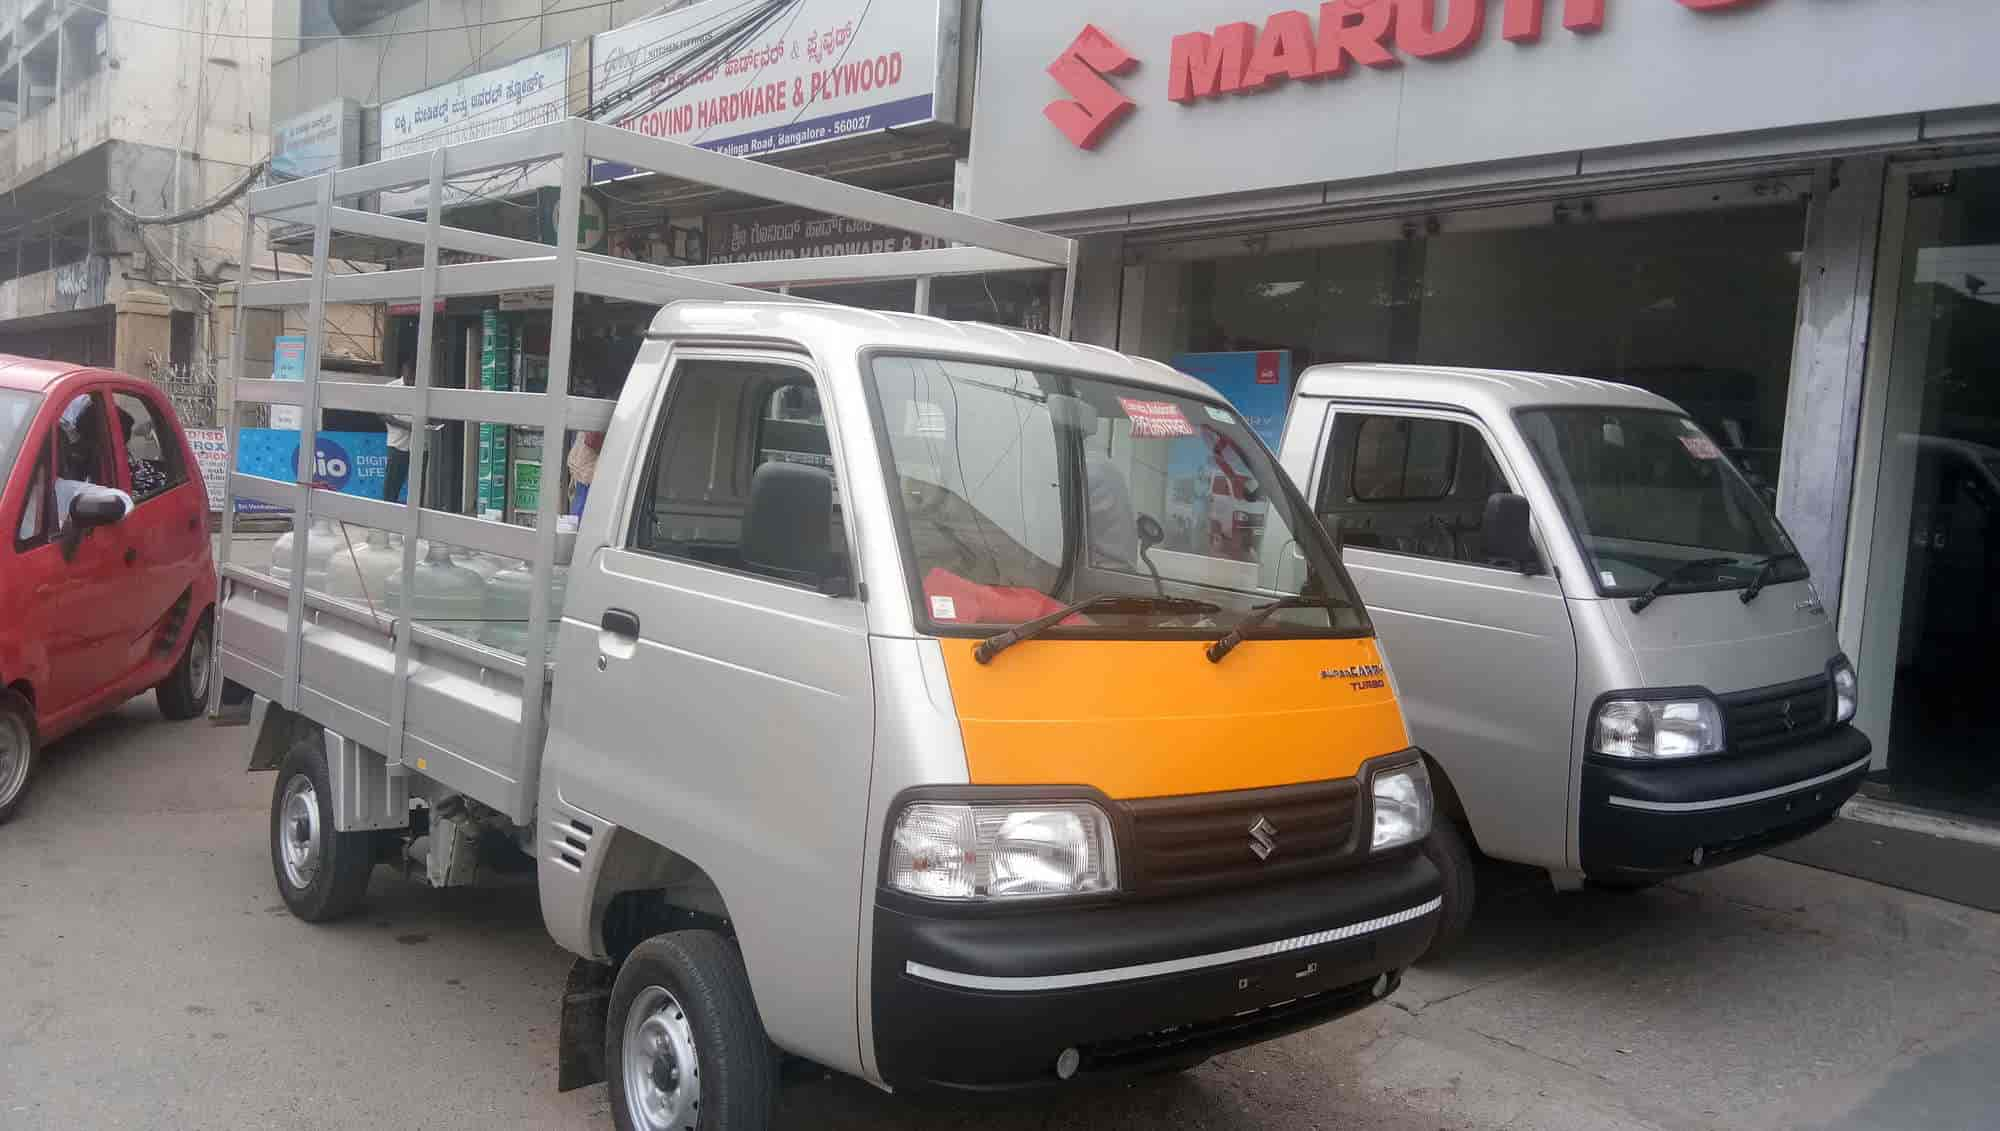 Maruti Suzuki Super Carry Mission Road Commercial Vehicle Dealers